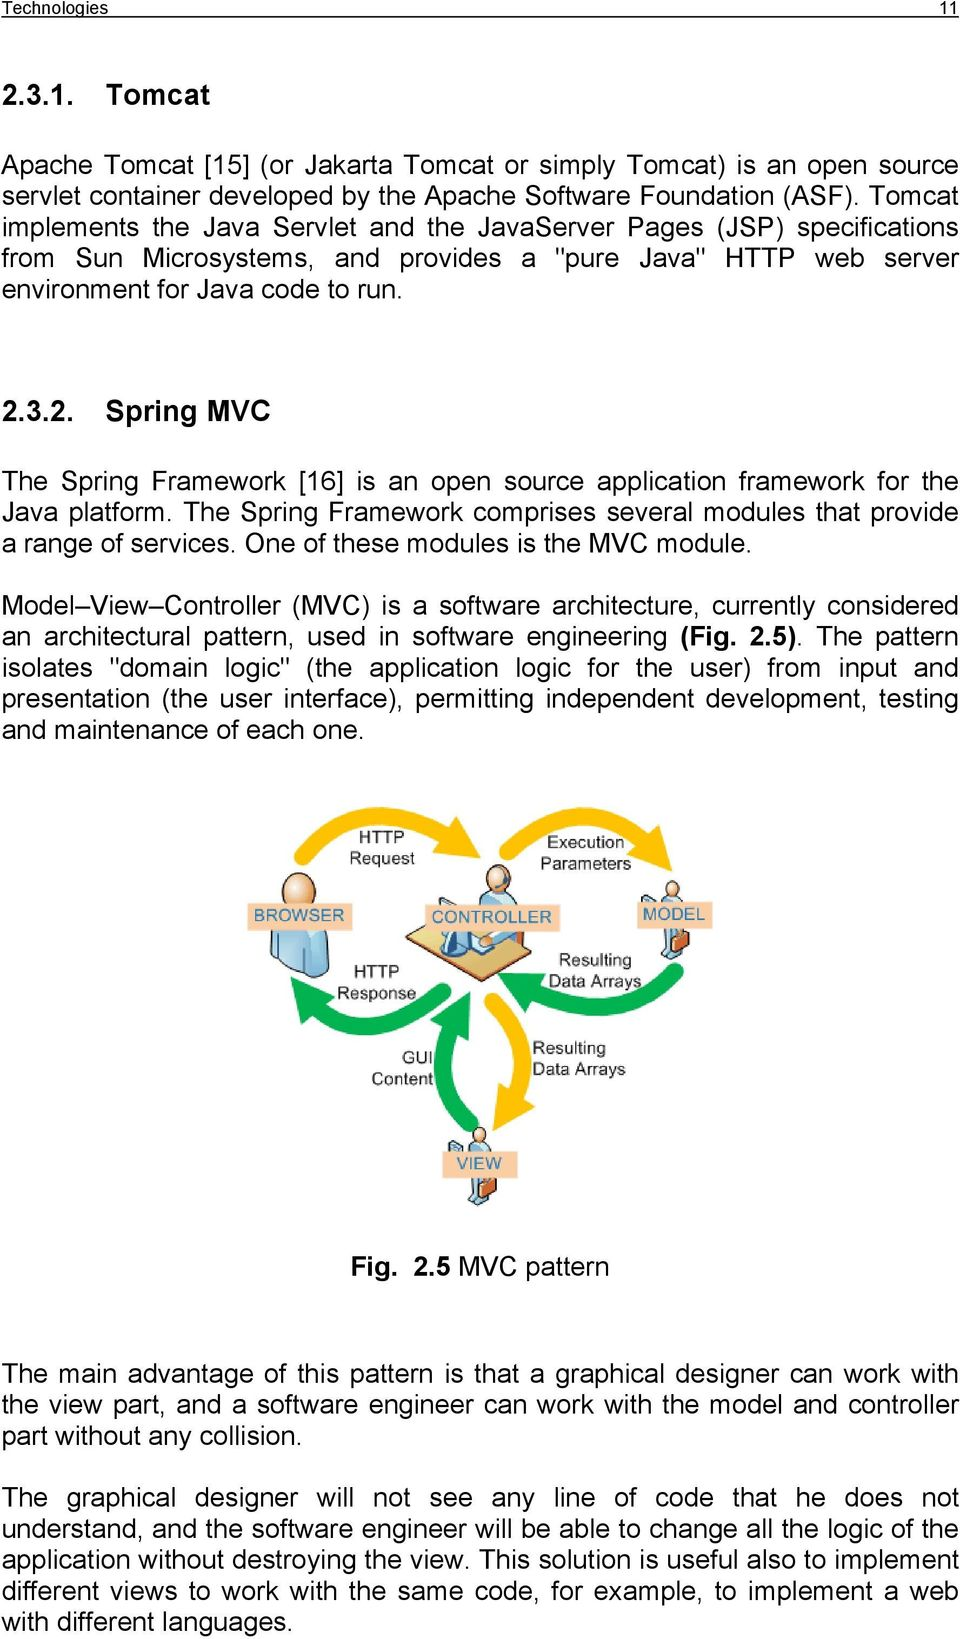 3.2. Spring MVC The Spring Framework [16] is an open source application framework for the Java platform. The Spring Framework comprises several modules that provide a range of services.